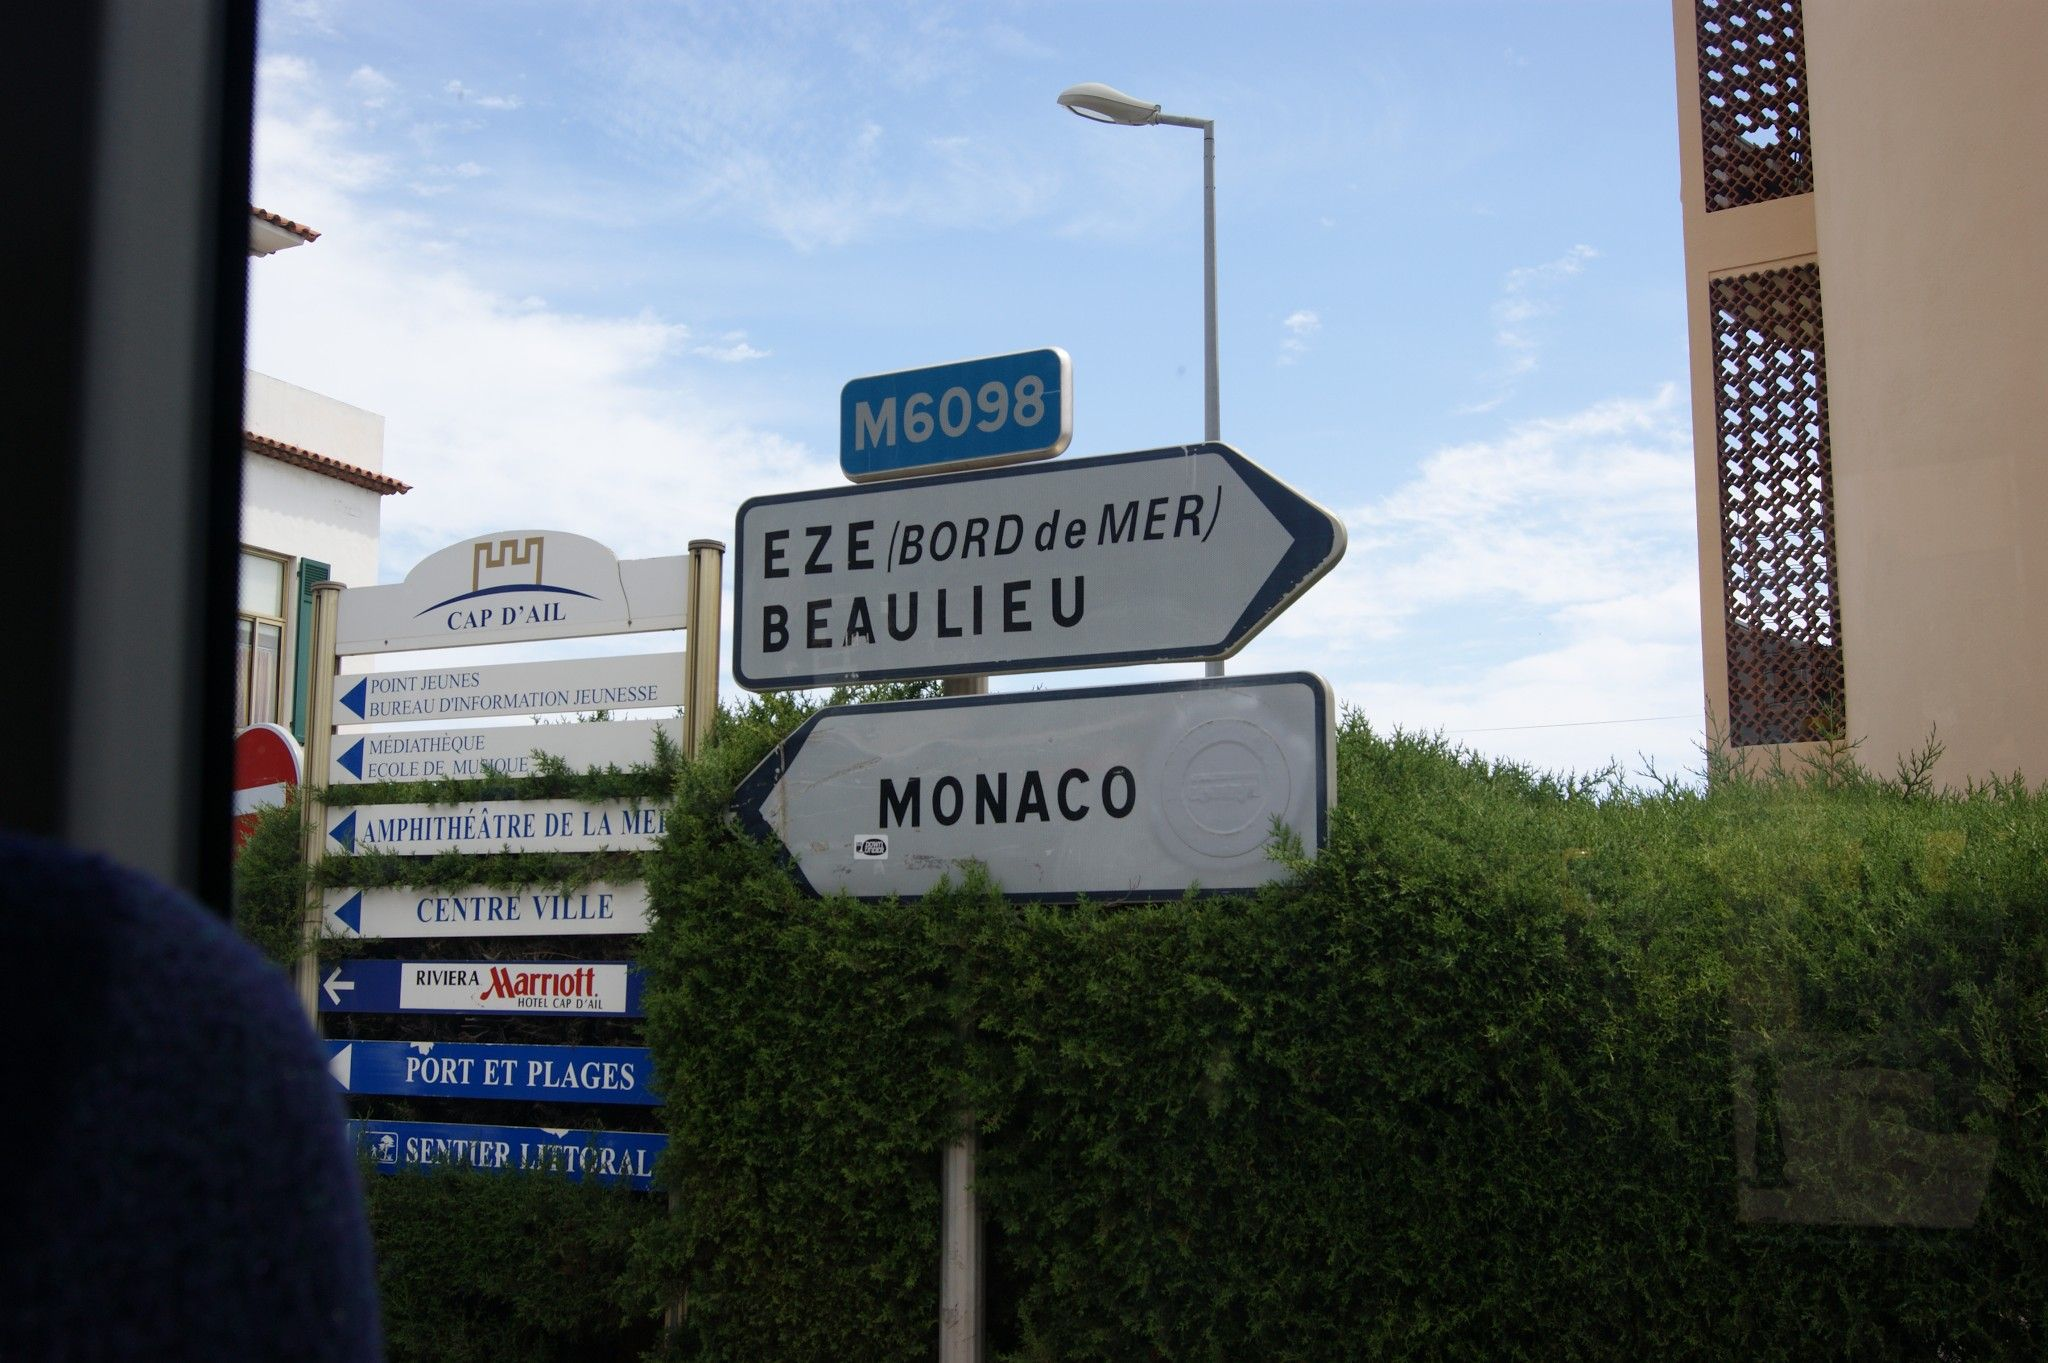 Travelling to monaco this beautiful world we live in